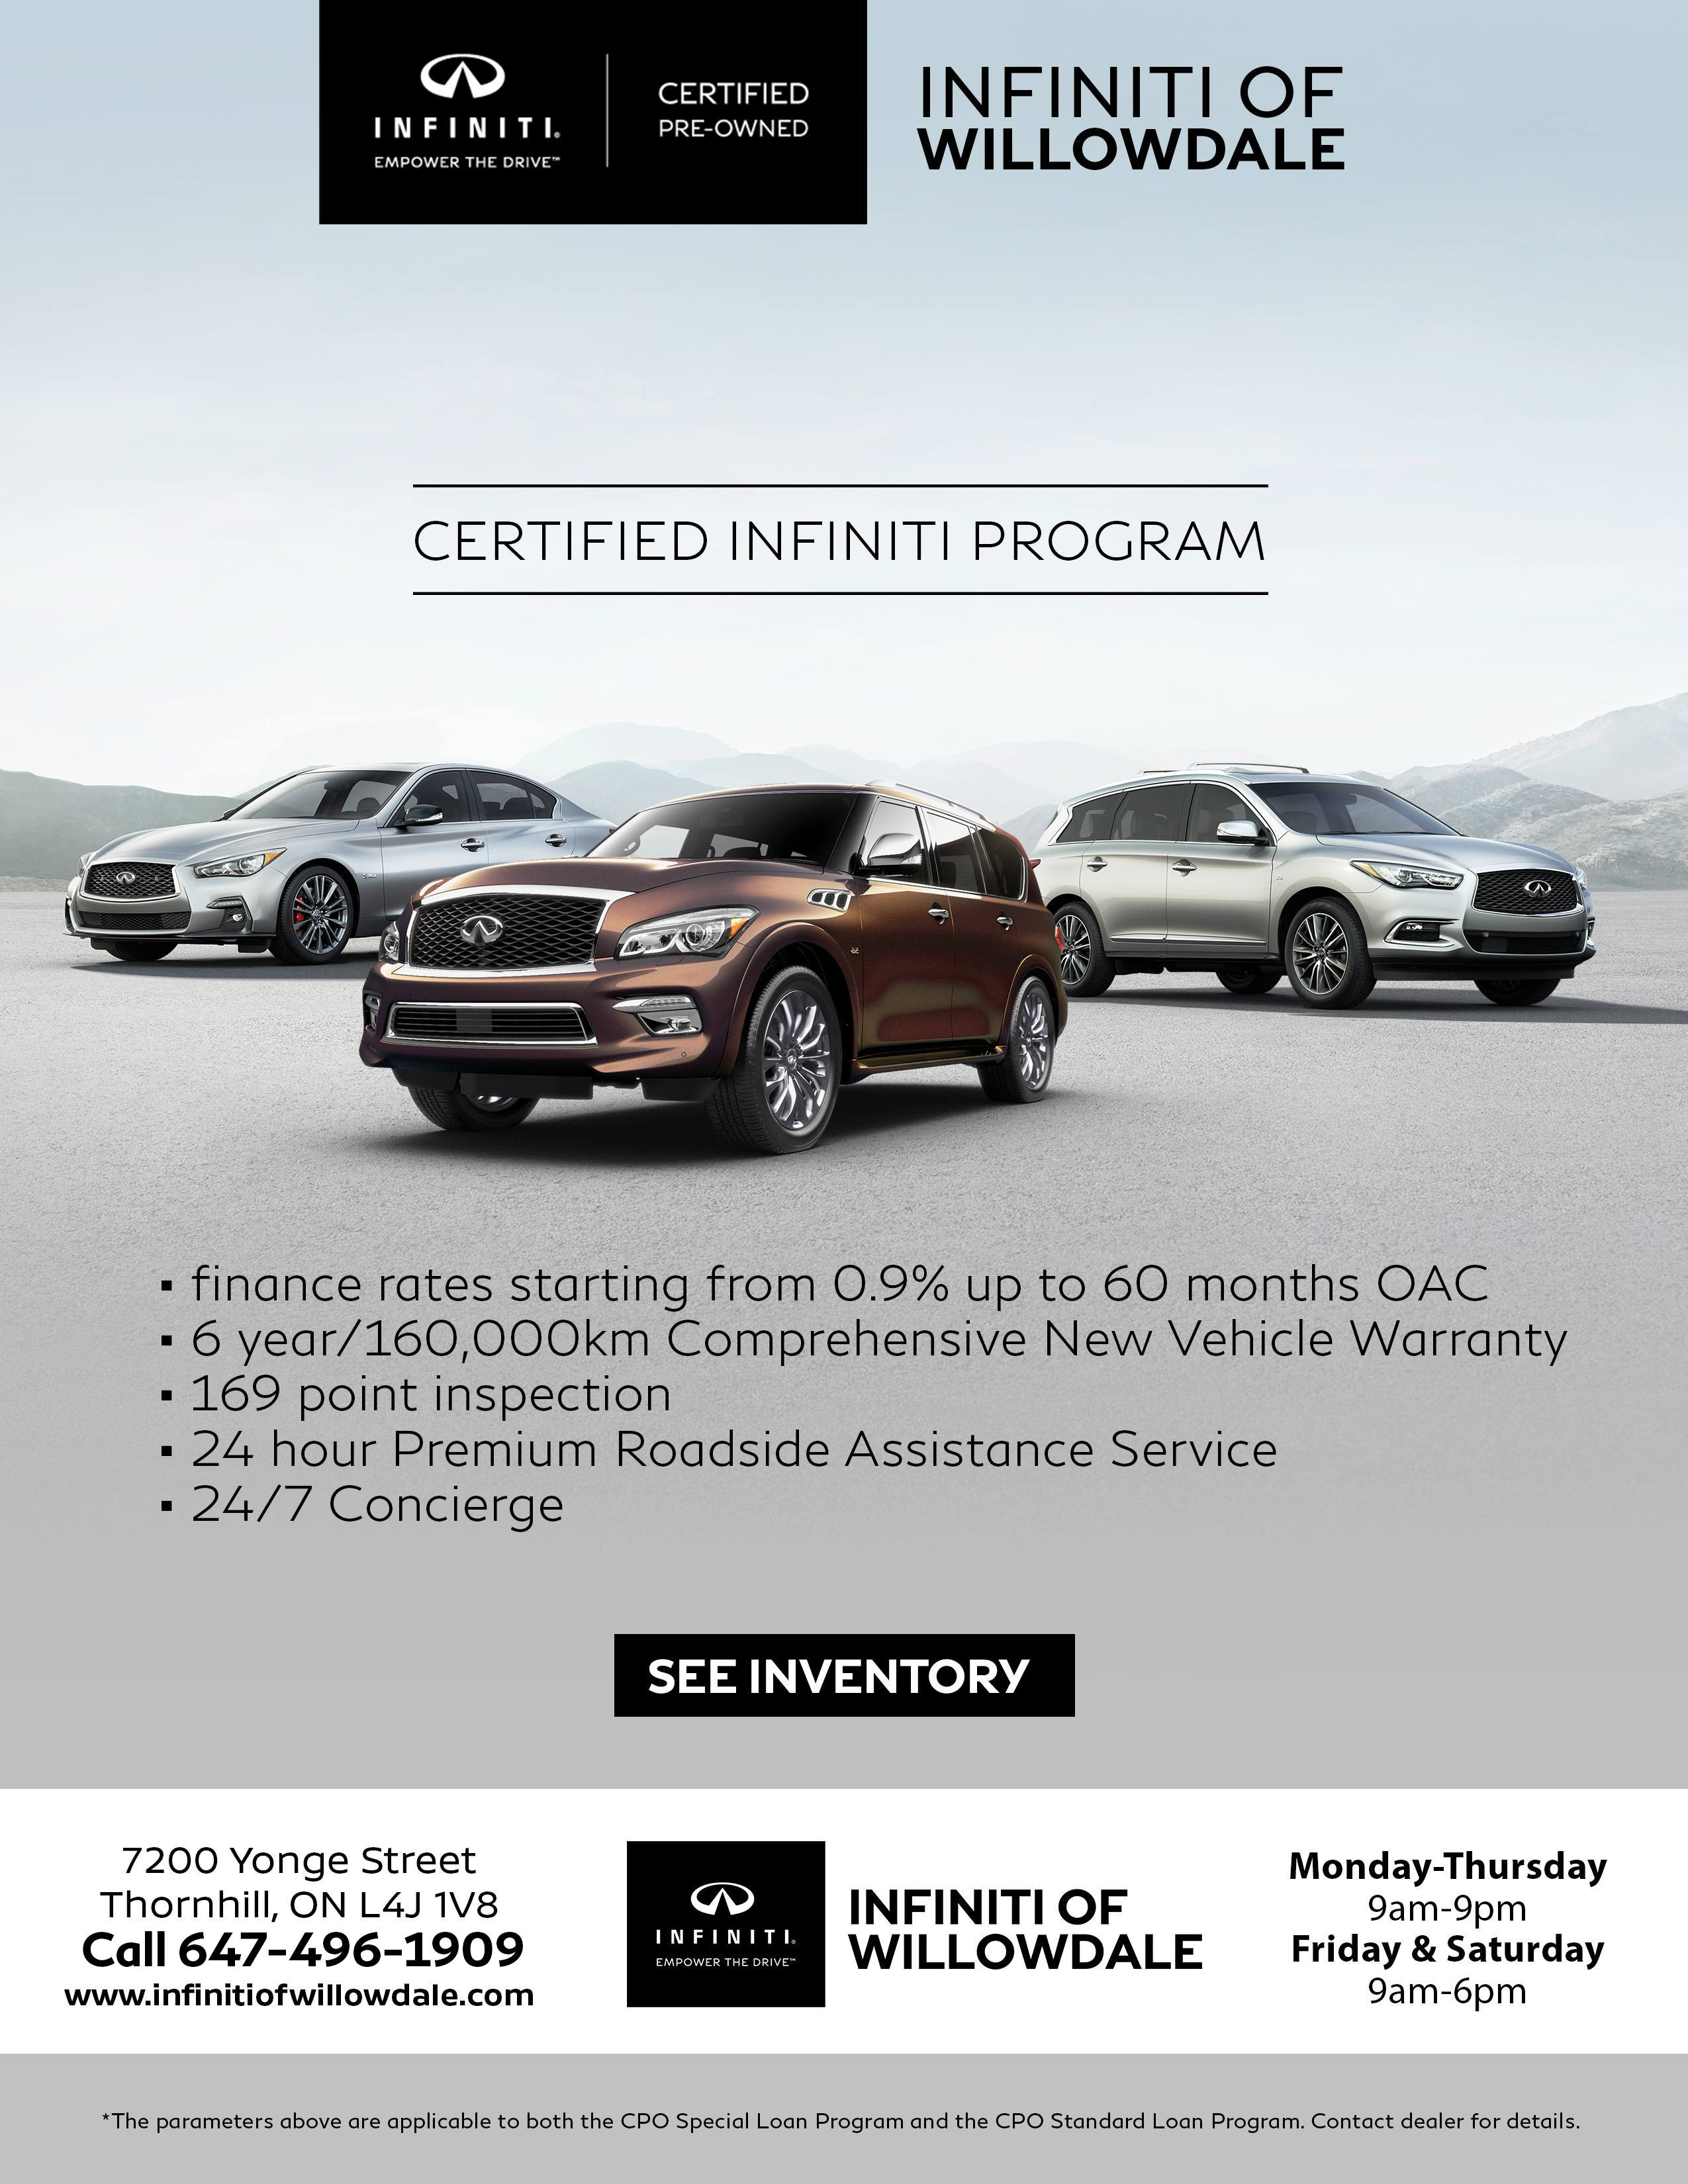 Infiniti Certified Pre Owned >> Certified Pre Owned Program Infiniti Of Willowdale Thornhill On